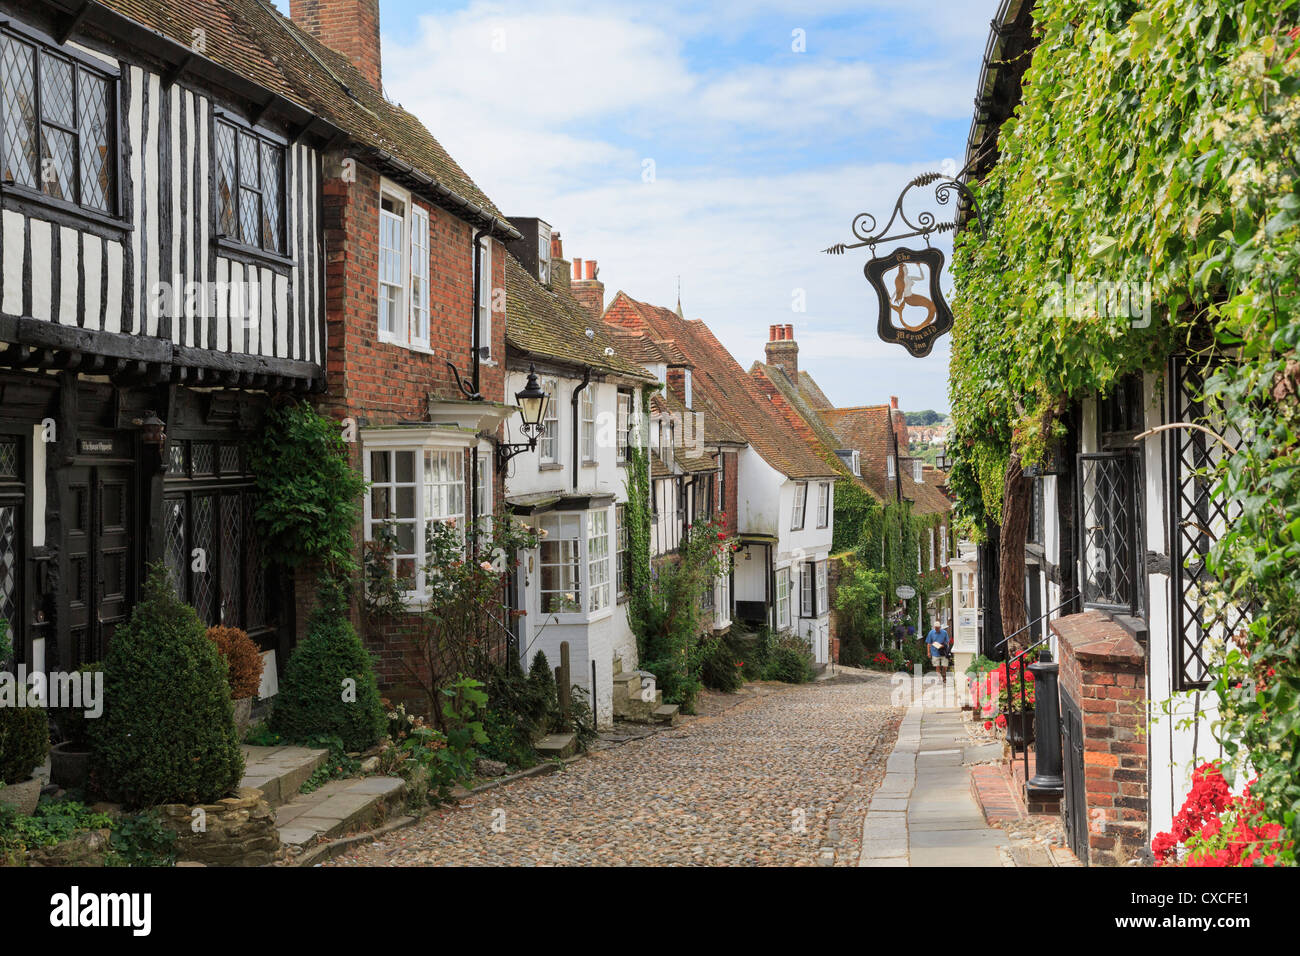 Famous narrow cobbled Mermaid Street with quaint old houses and inn in historic Cinque Port town of Rye East Sussex - Stock Image